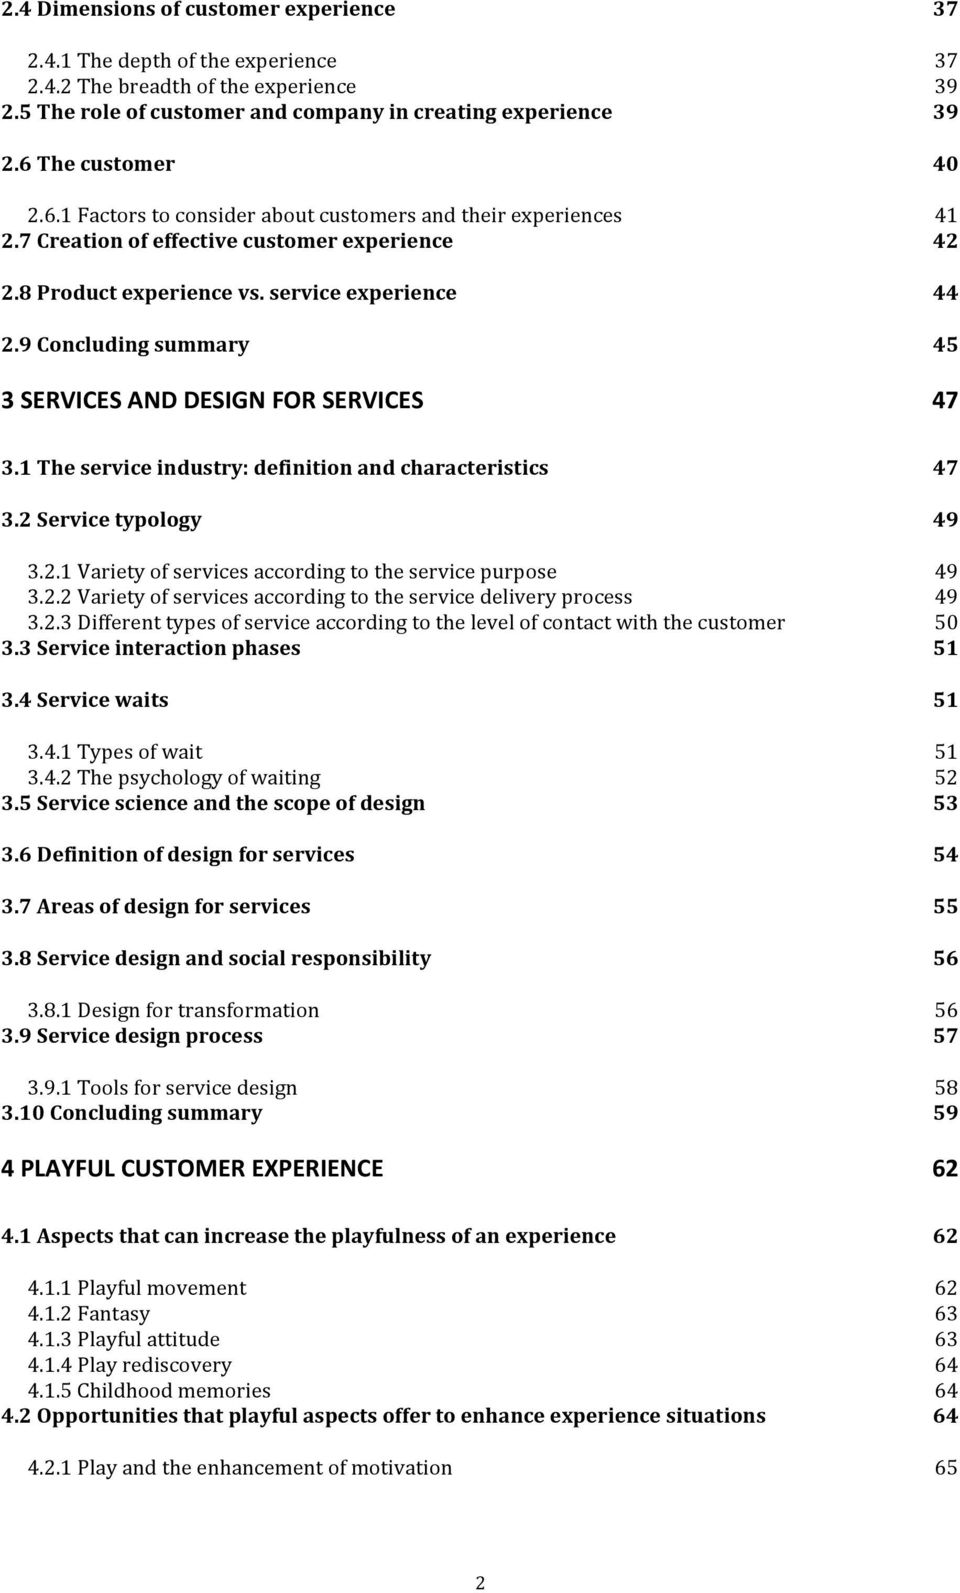 9 Concluding summary 45 3 SERVICES AND DESIGN FOR SERVICES 47 3.1 The service industry: definition and characteristics 47 3.2 Service typology 49 3.2.1 Variety of services according to the service purpose 49 3.